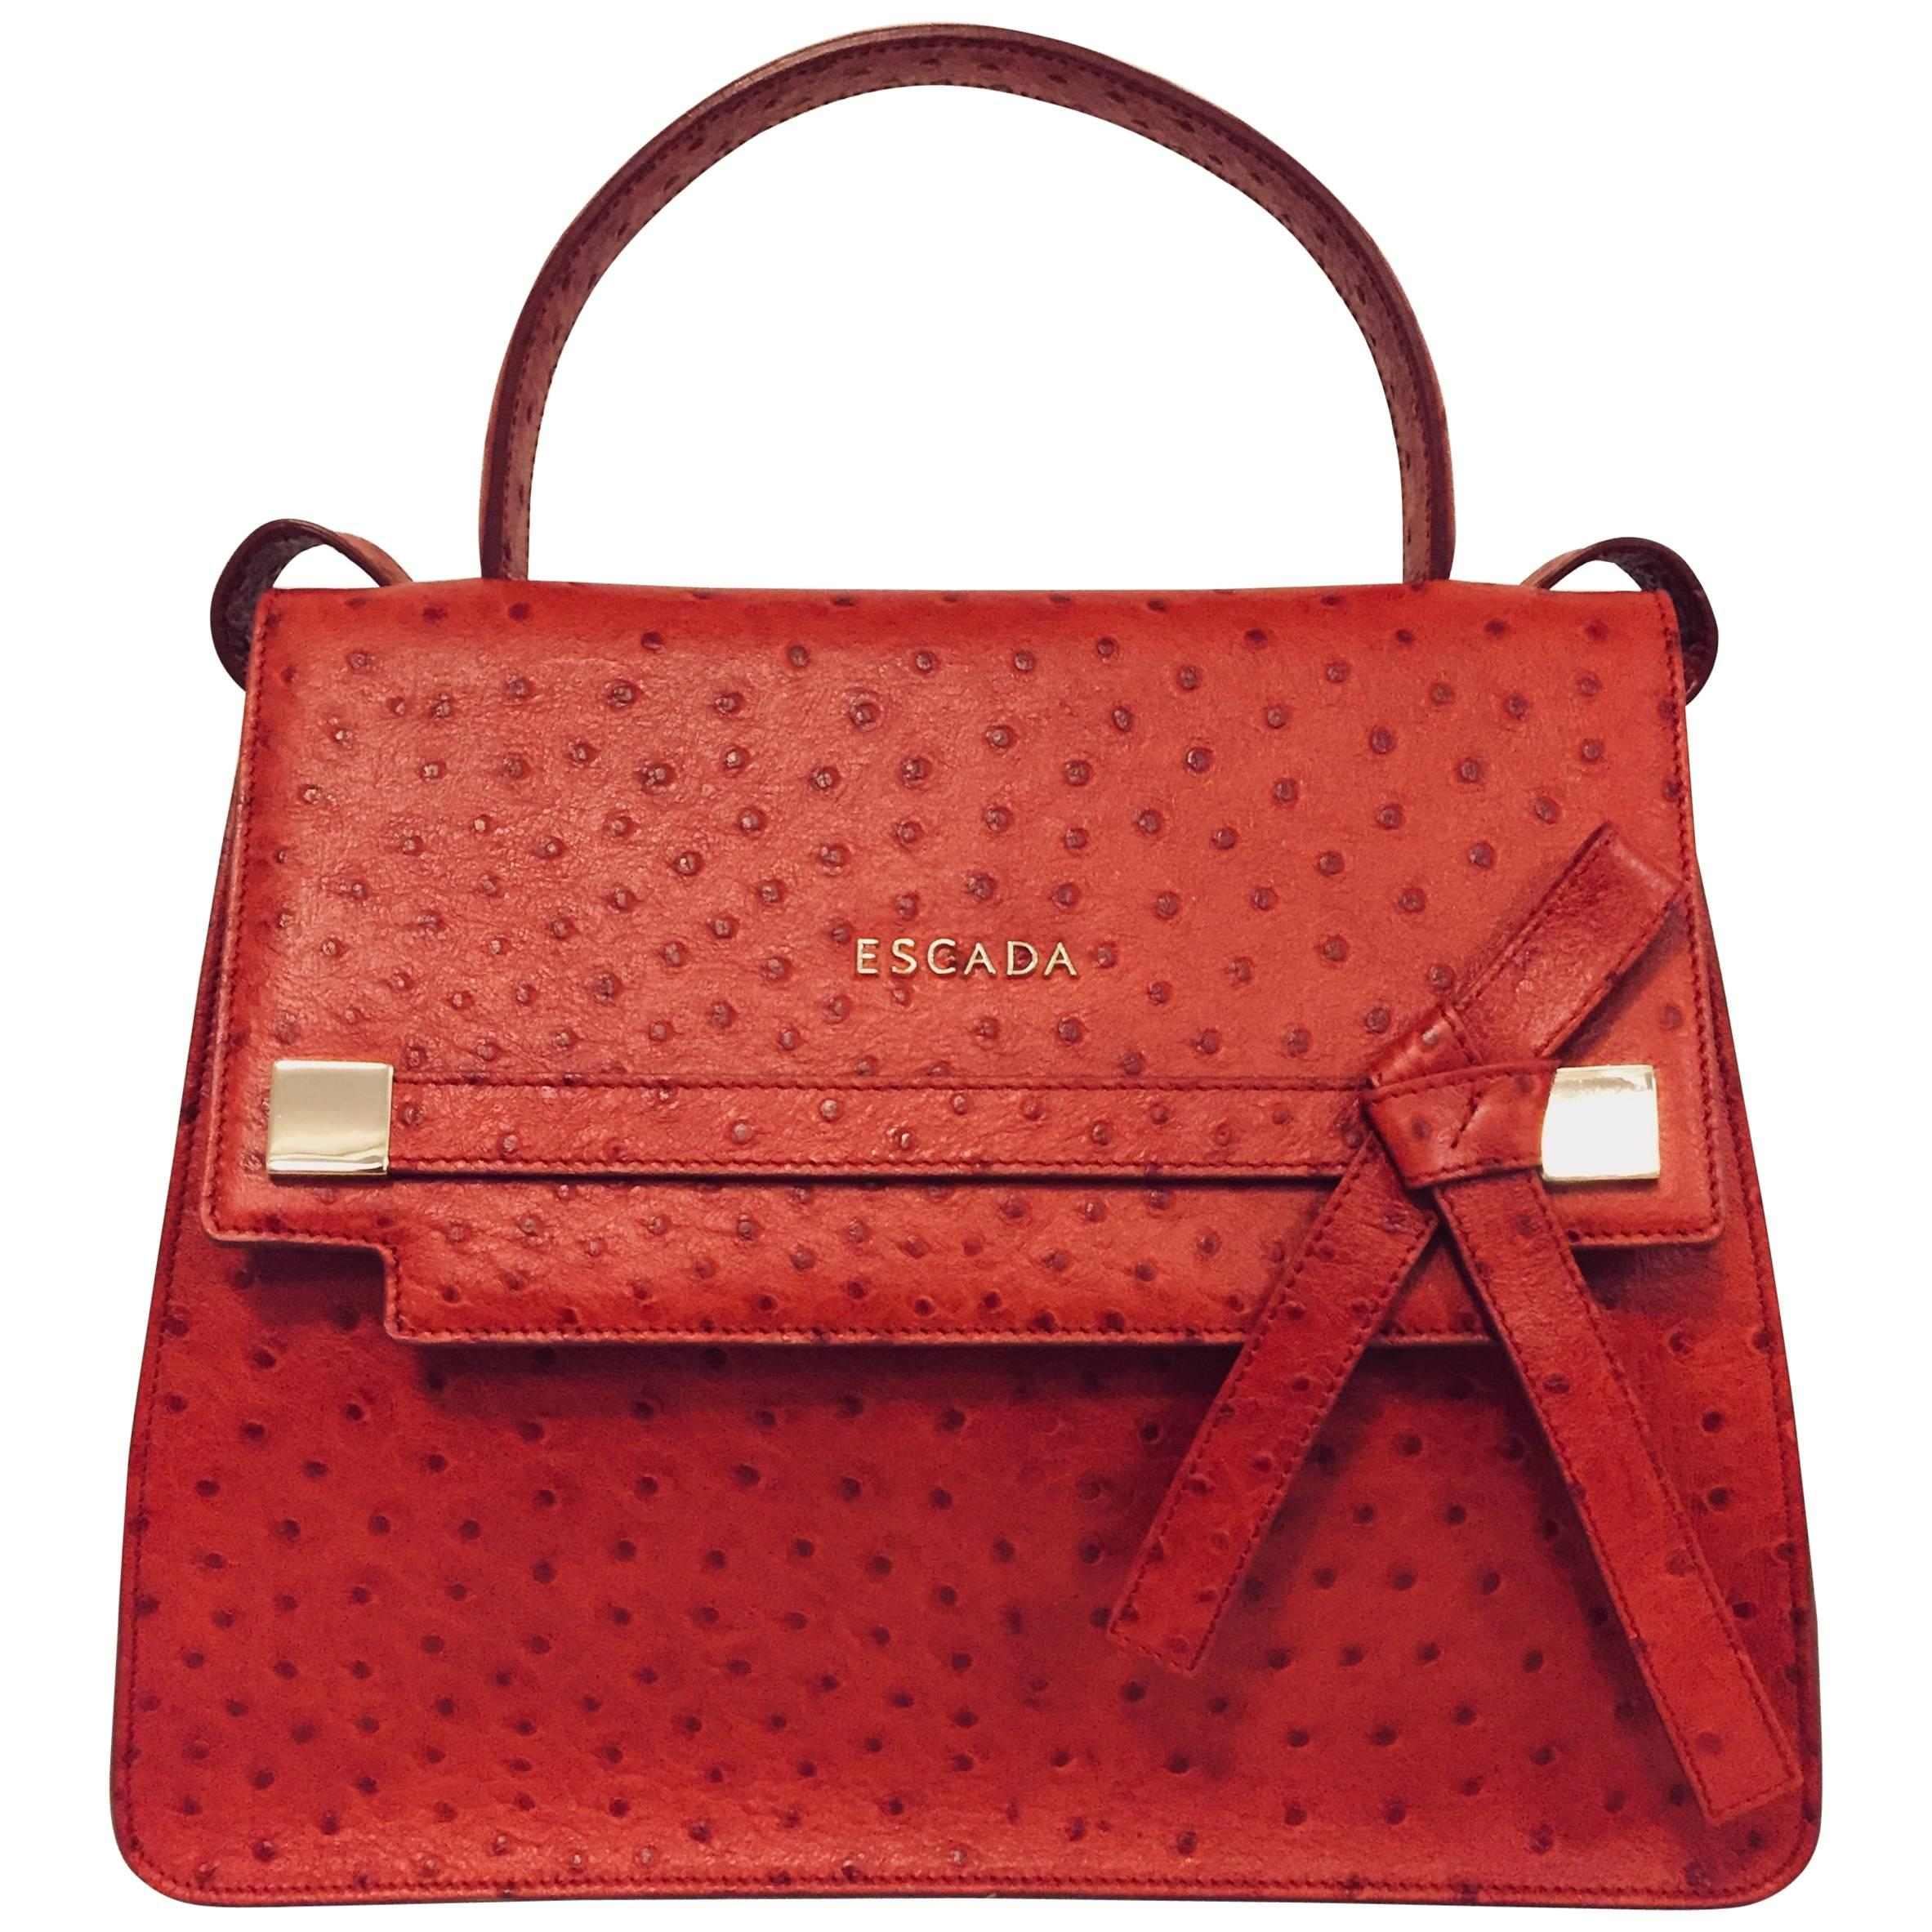 Exceptional Escada Cherry Embossed Ostrich Structured Leather Handbag For At 1stdibs